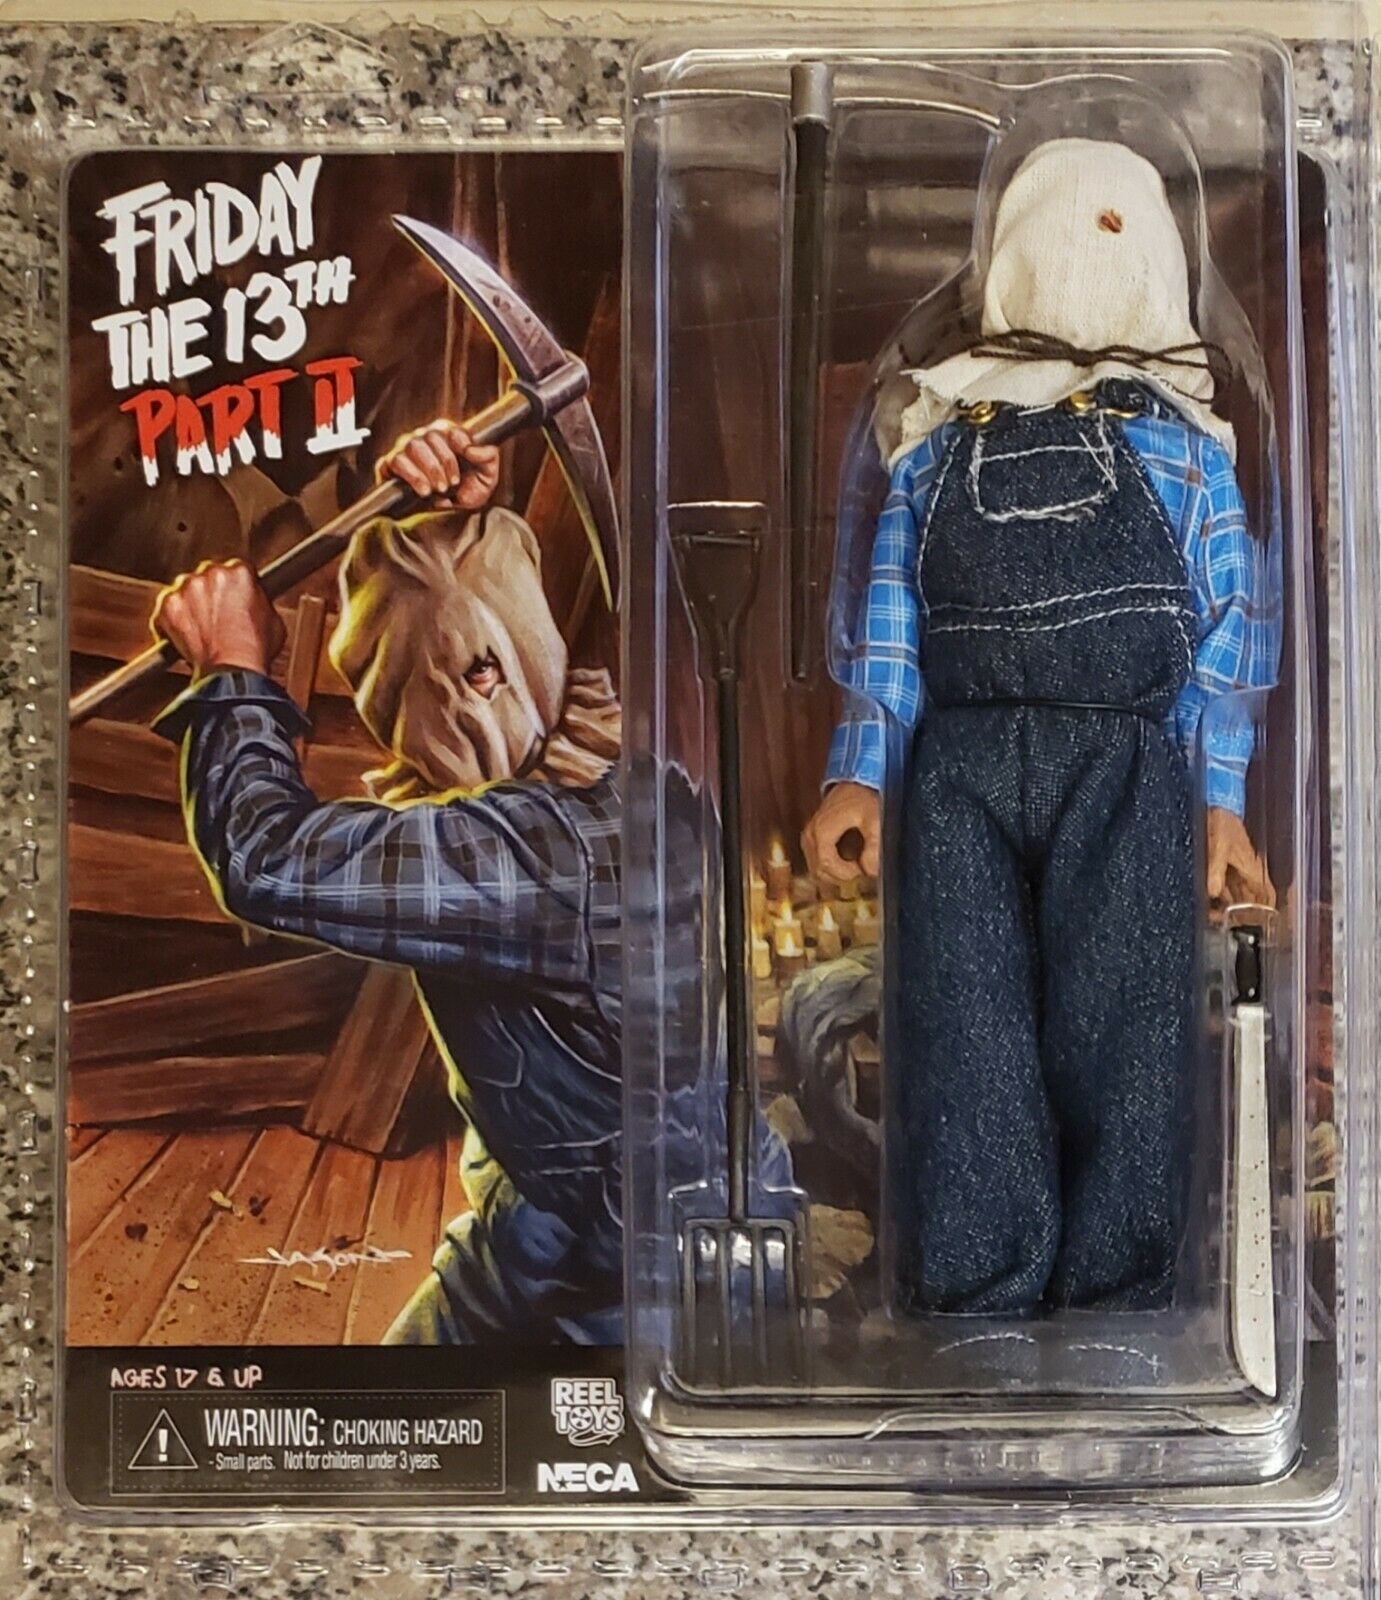 NECA FRIDAY THE 13TH PART 2, JASON - RETRO CLOTHED FIGURE (NEW AND VERY RARE)